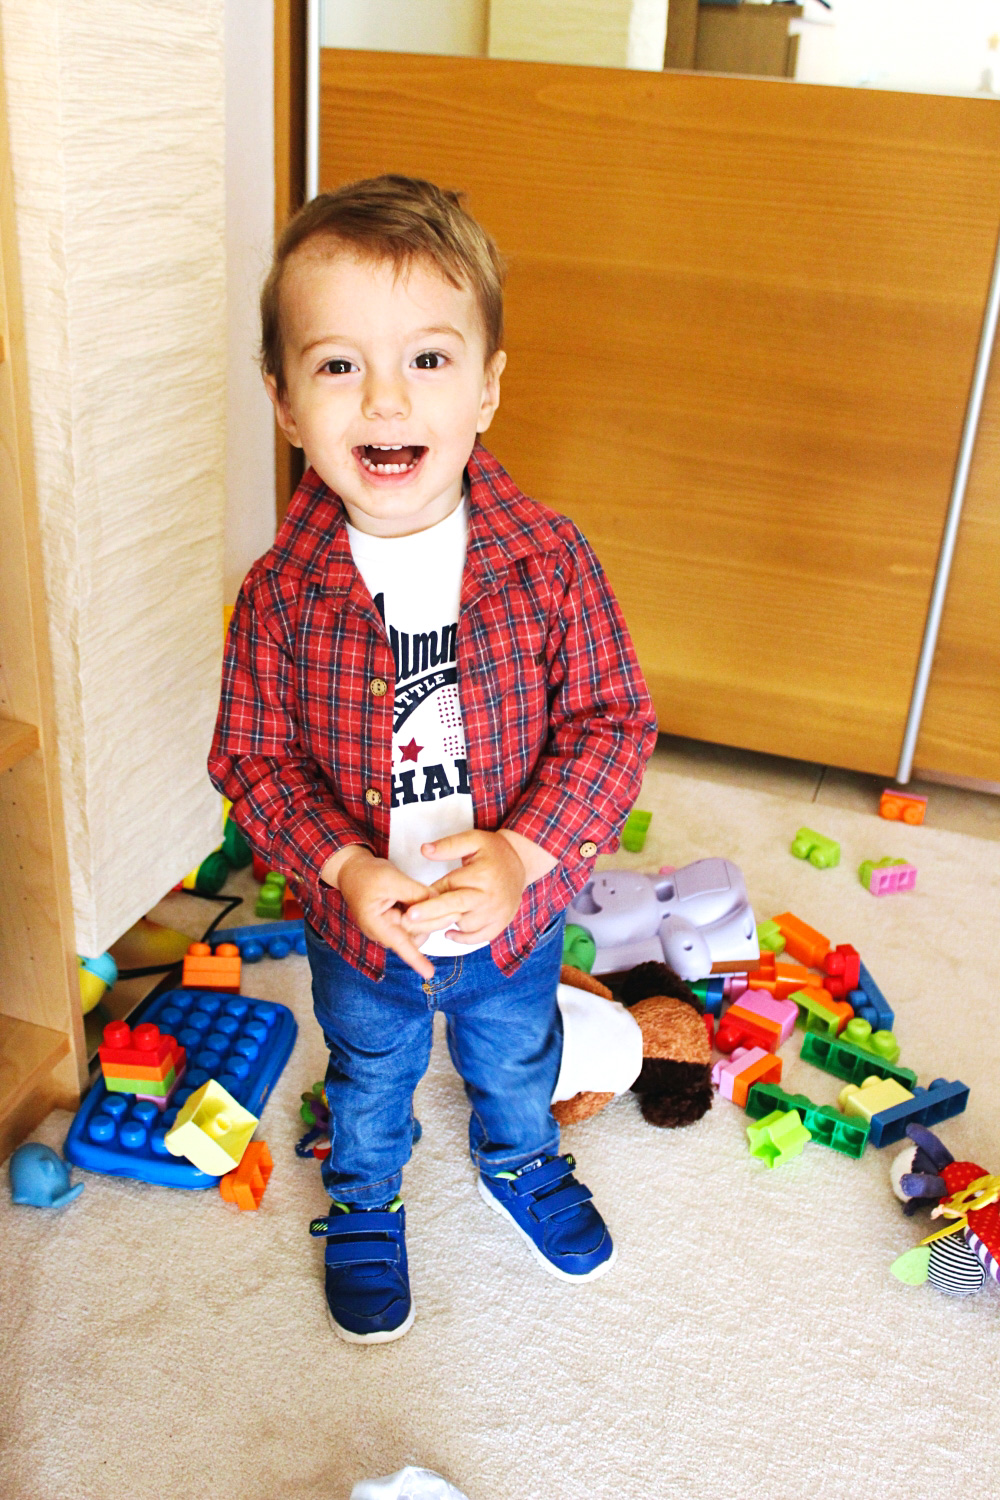 baby boy style, baby boy plaid shirt and jeans outfit